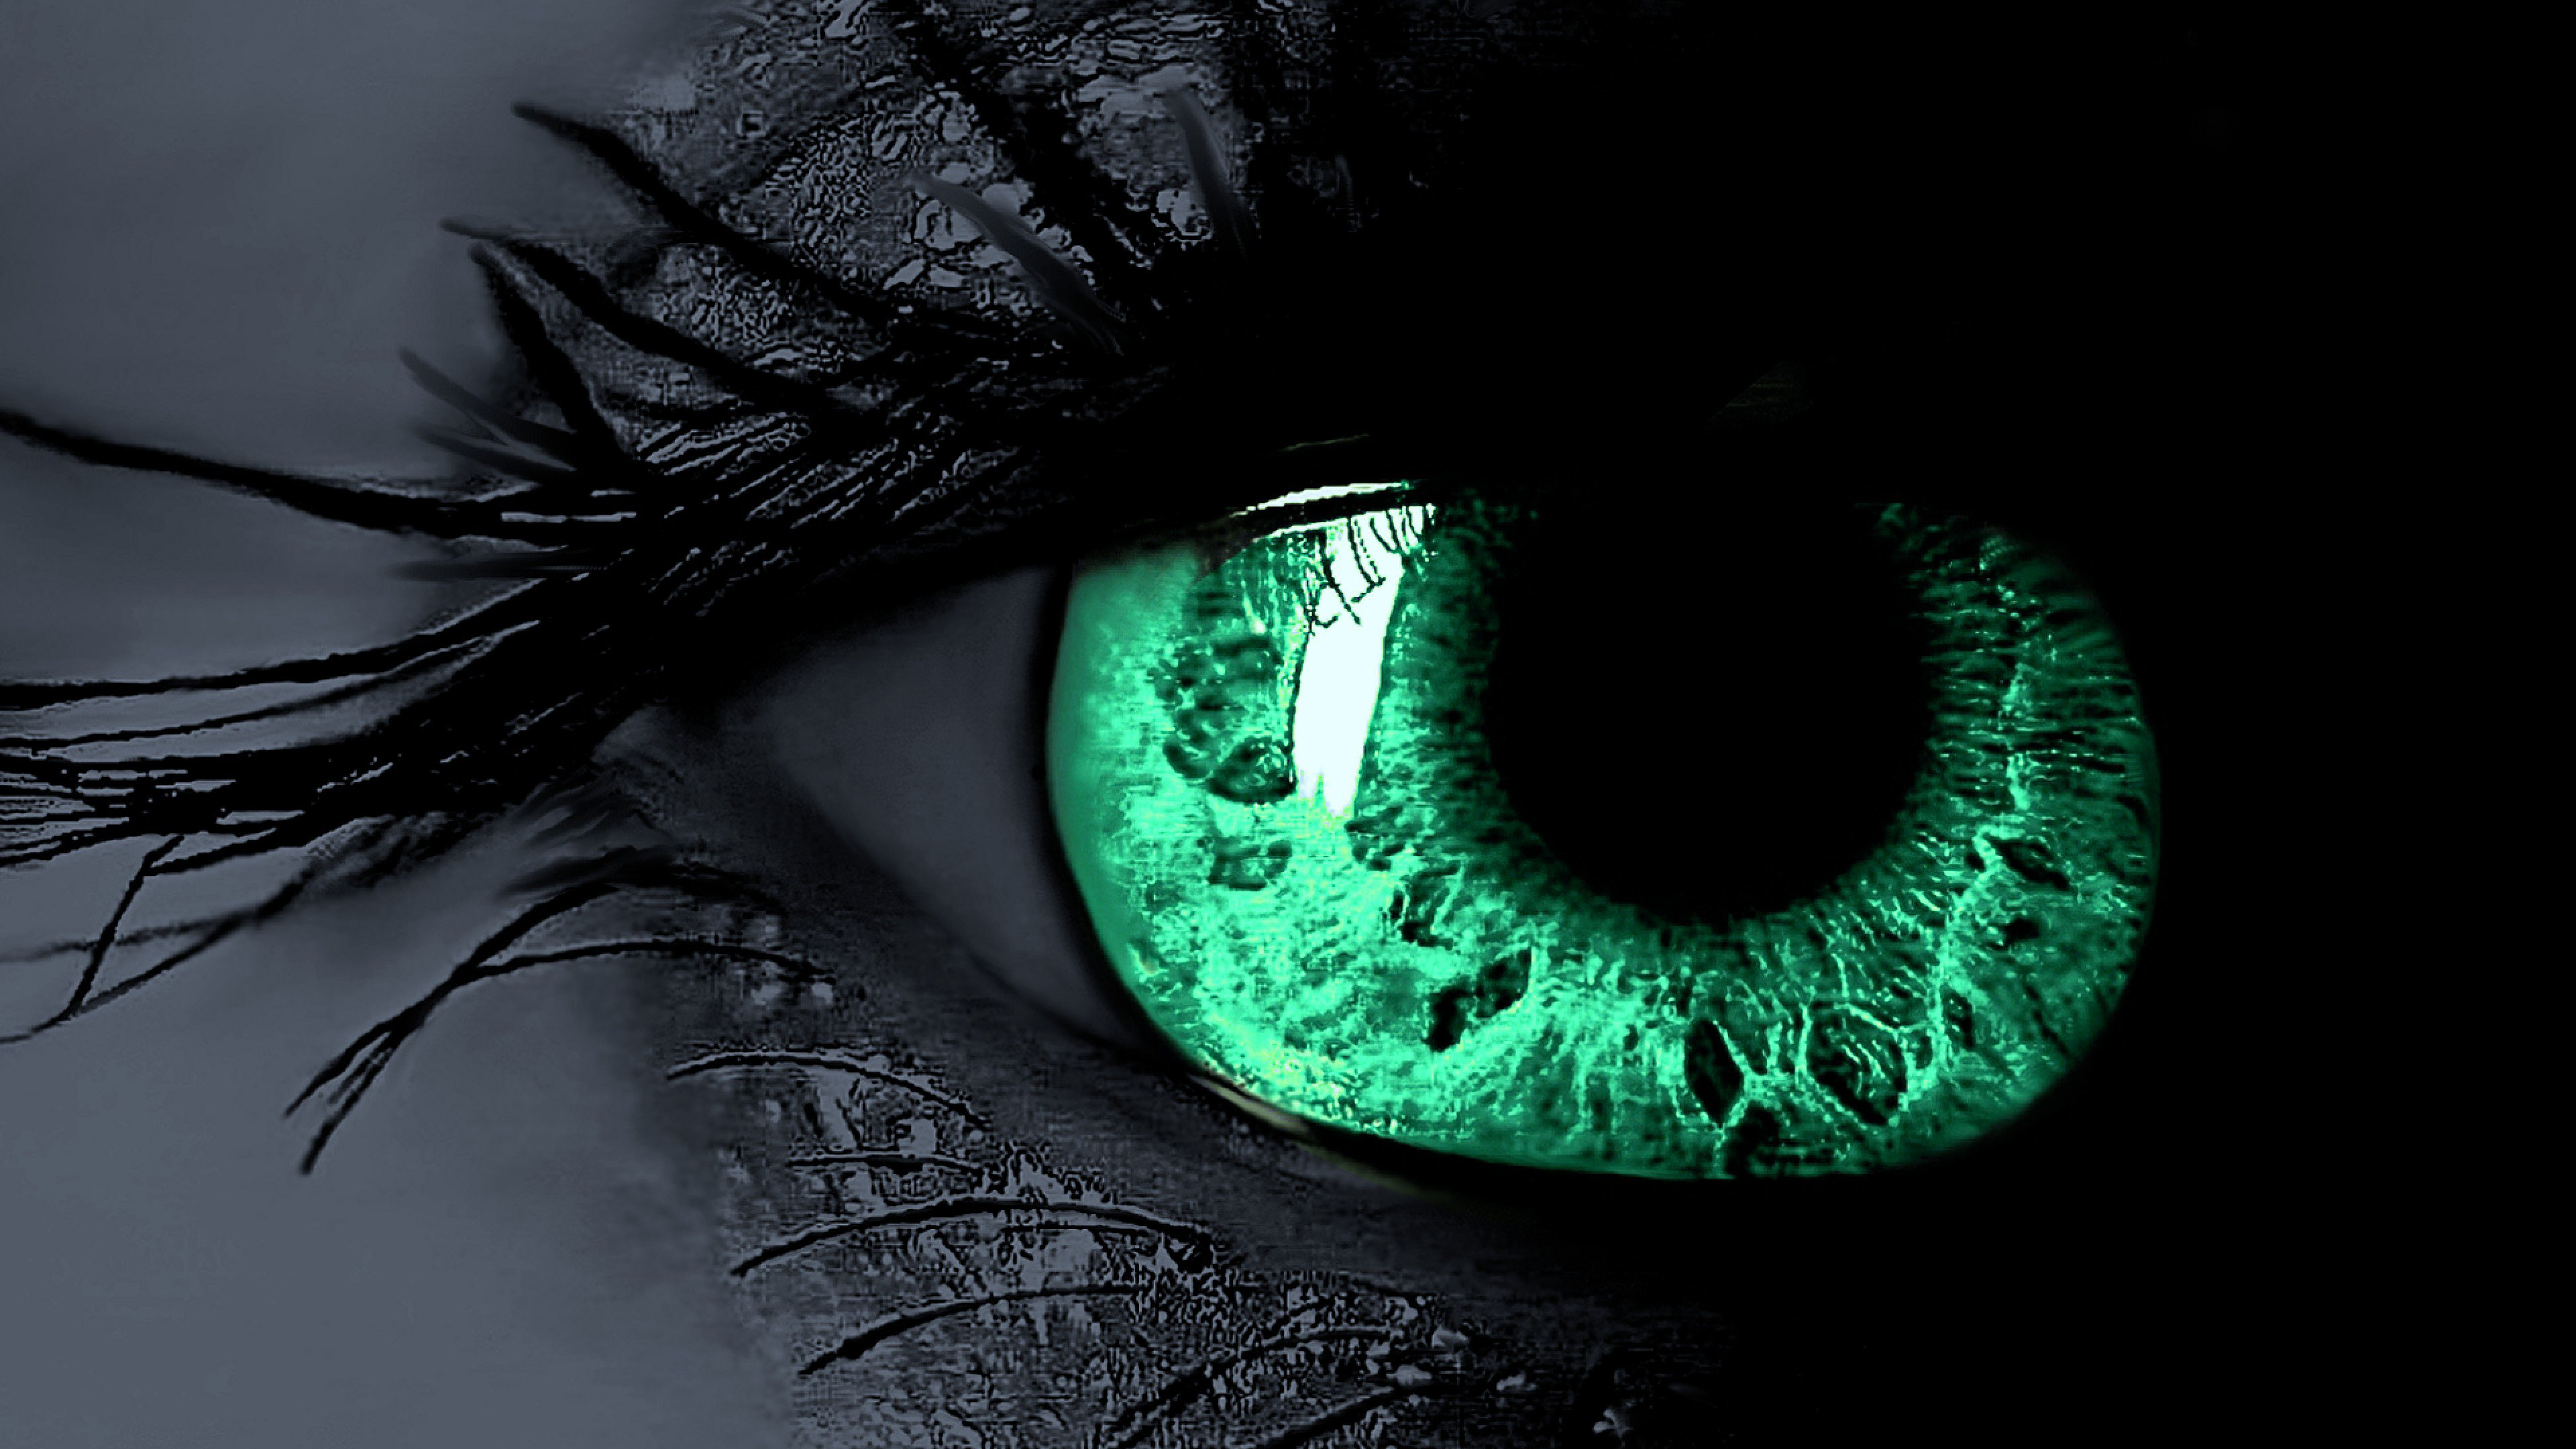 Eyes 4k Wallpapers For Your Desktop Or Mobile Screen Free And Easy To Download